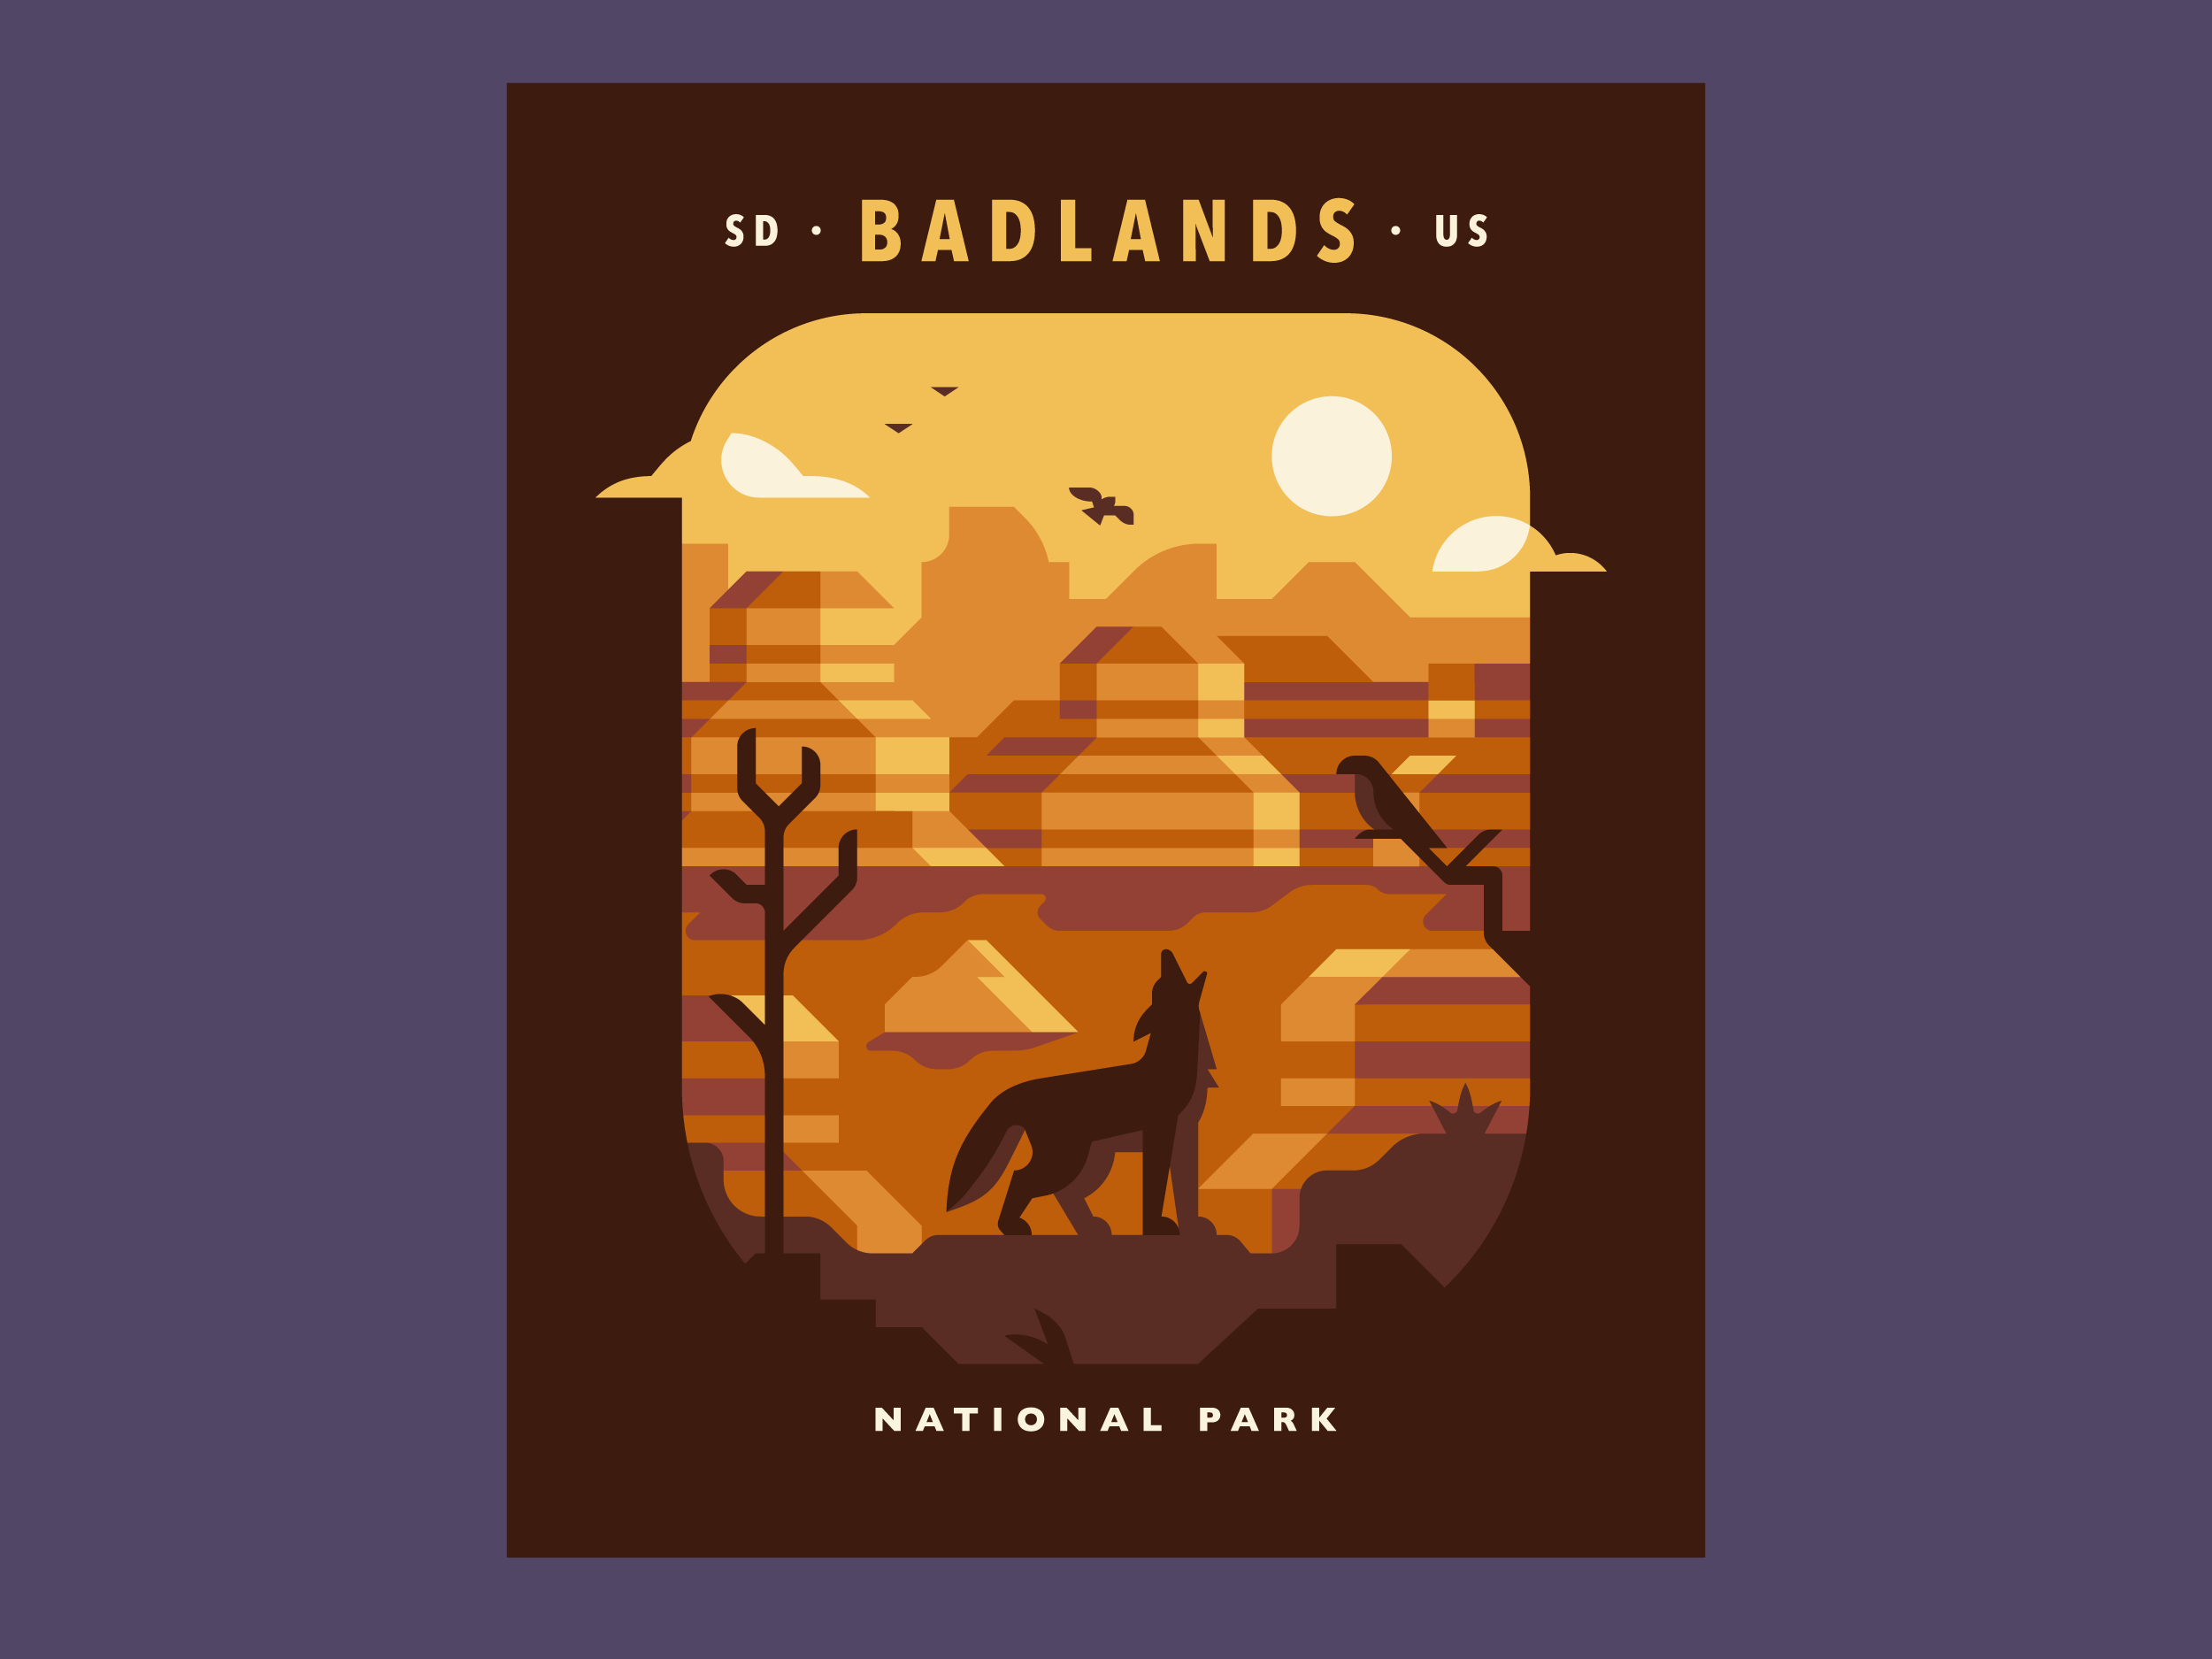 Badlands - National Parks prints and posters by Canopy Design and Illustration